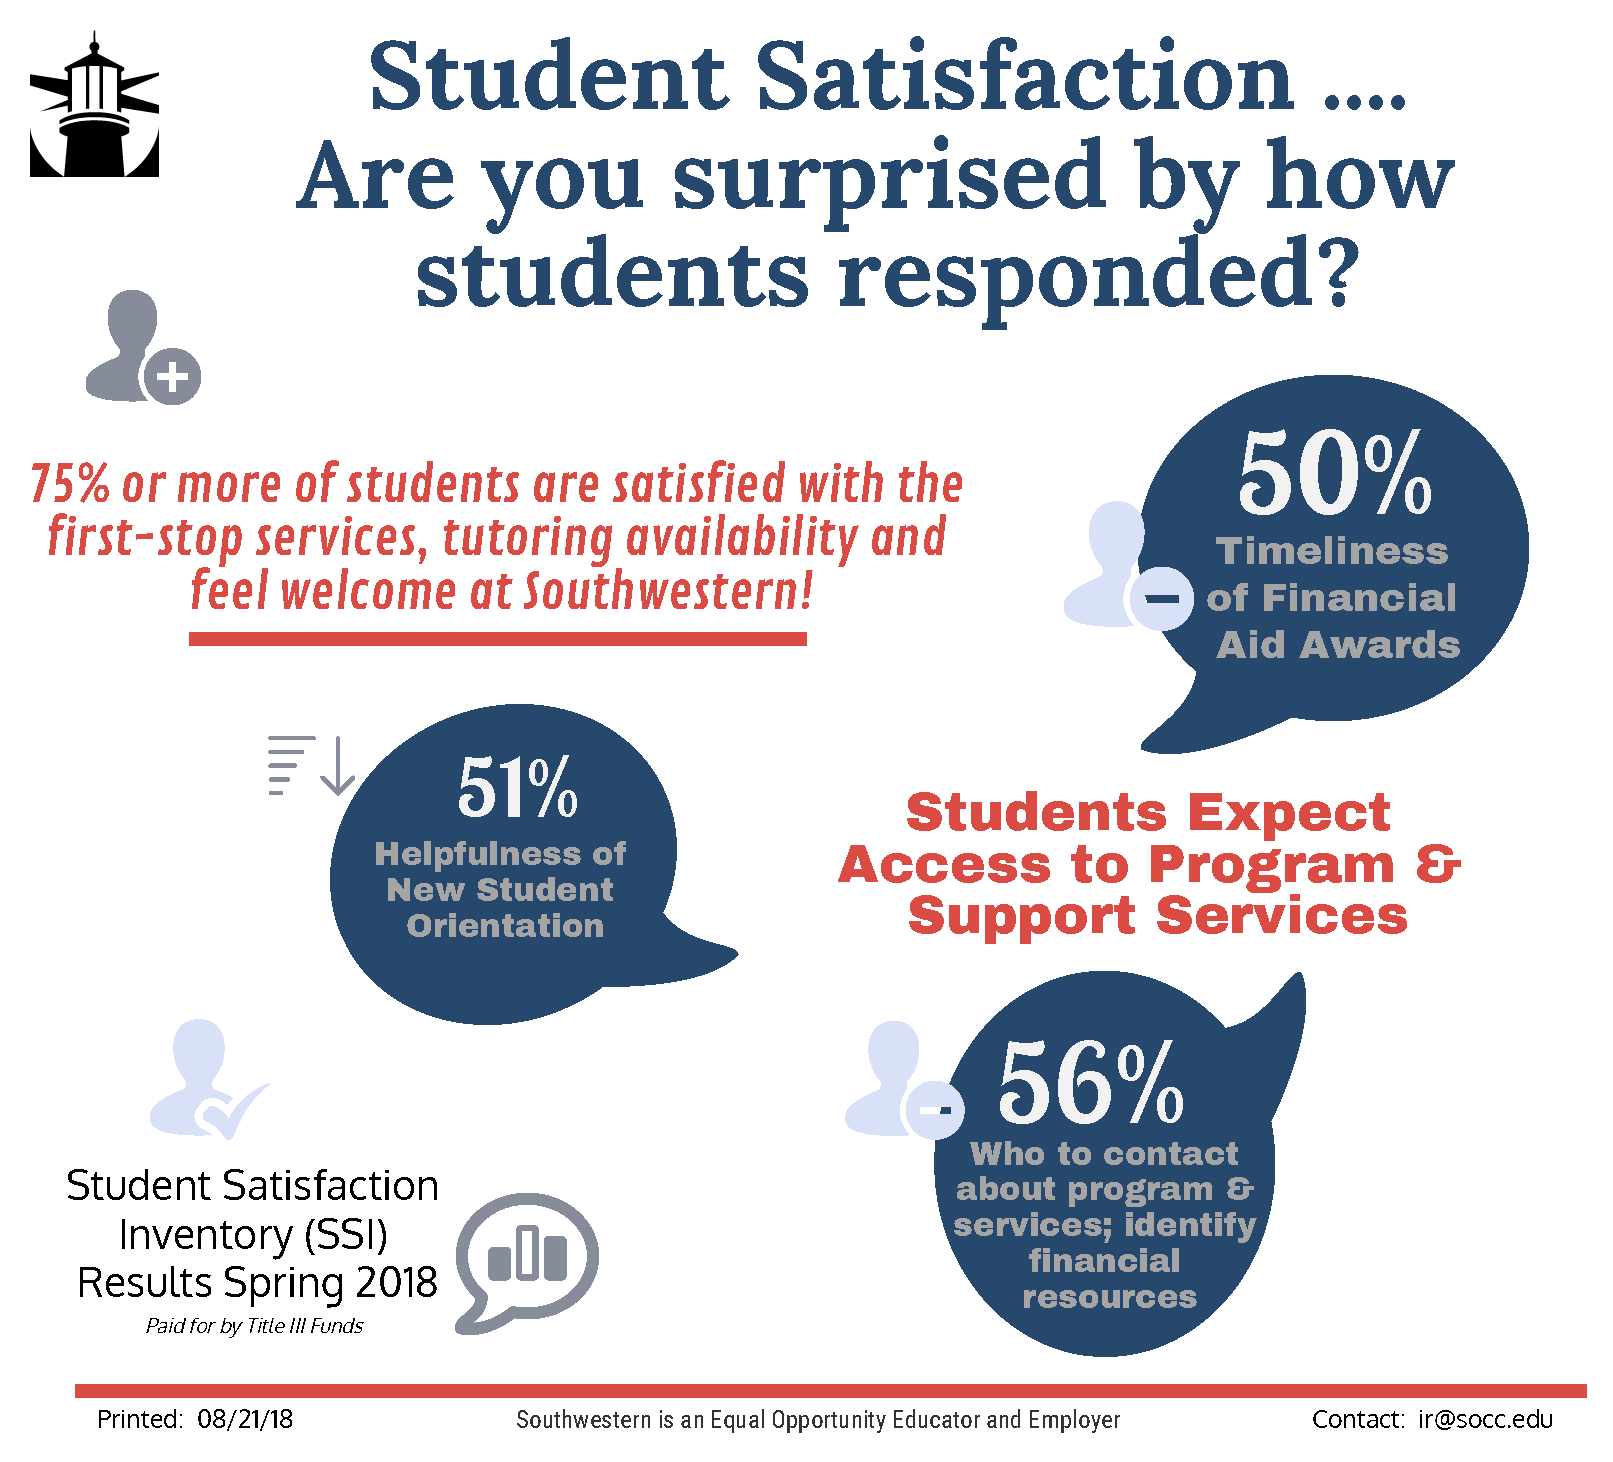 SSI Campus Services Student Response Highlights